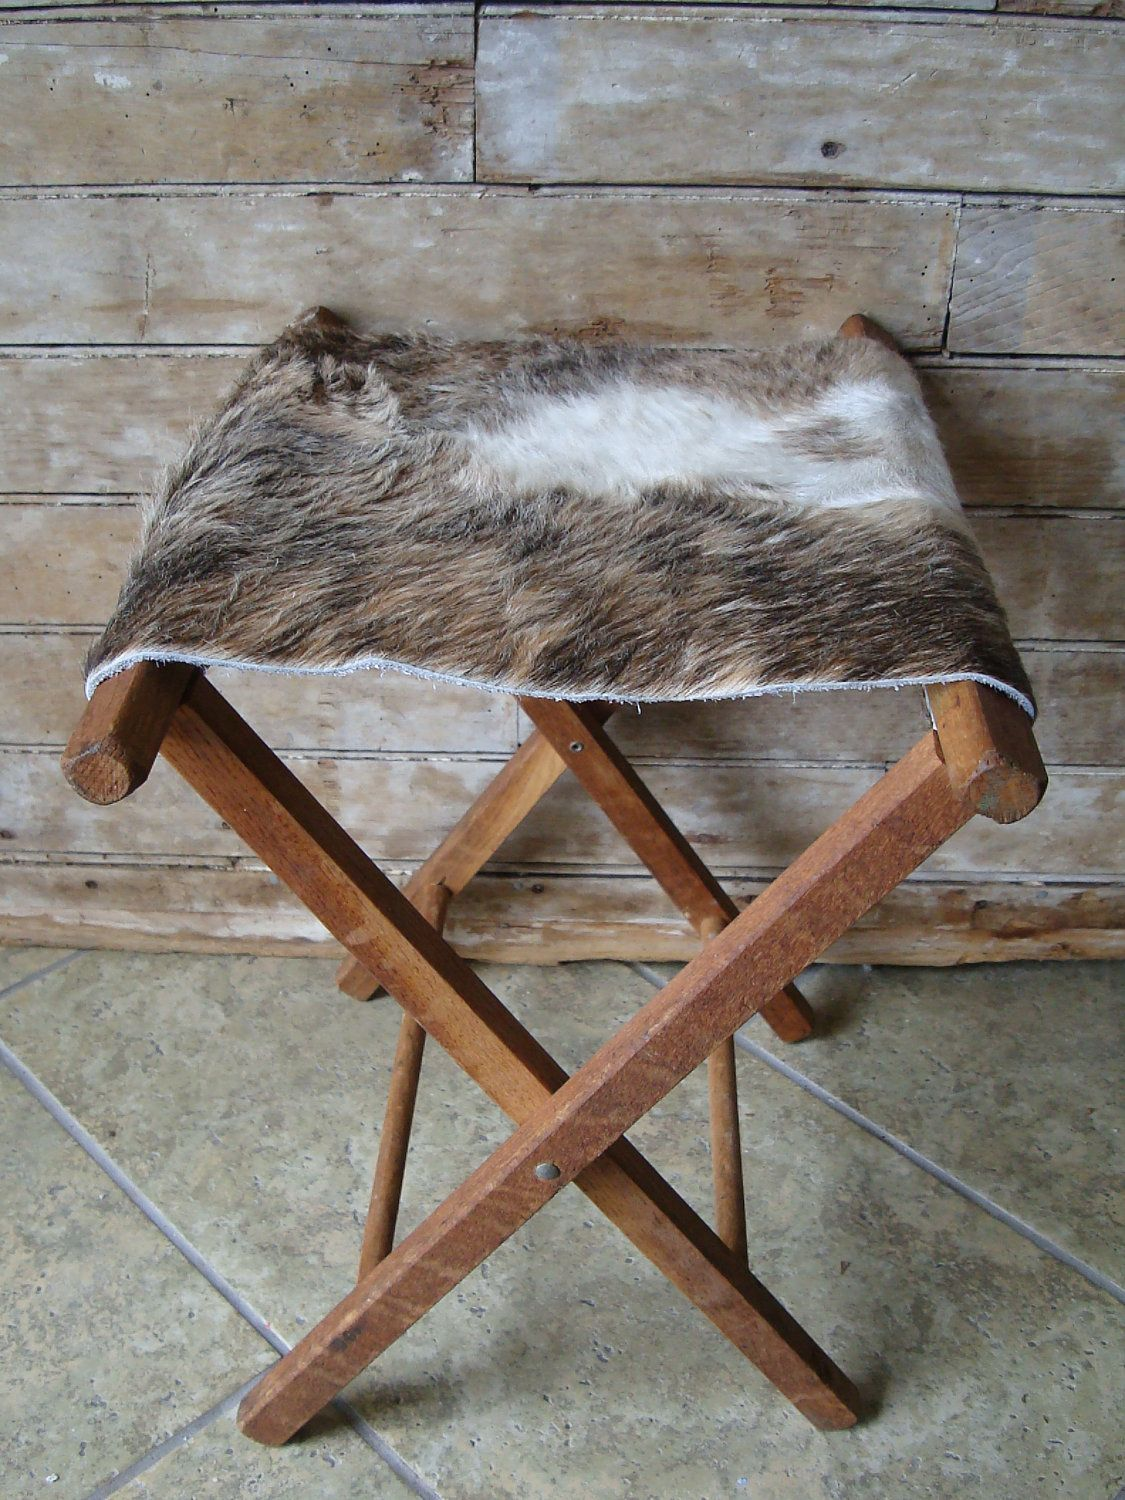 Vintage Camp Stool Cowhide Primitive Wooden Rare This